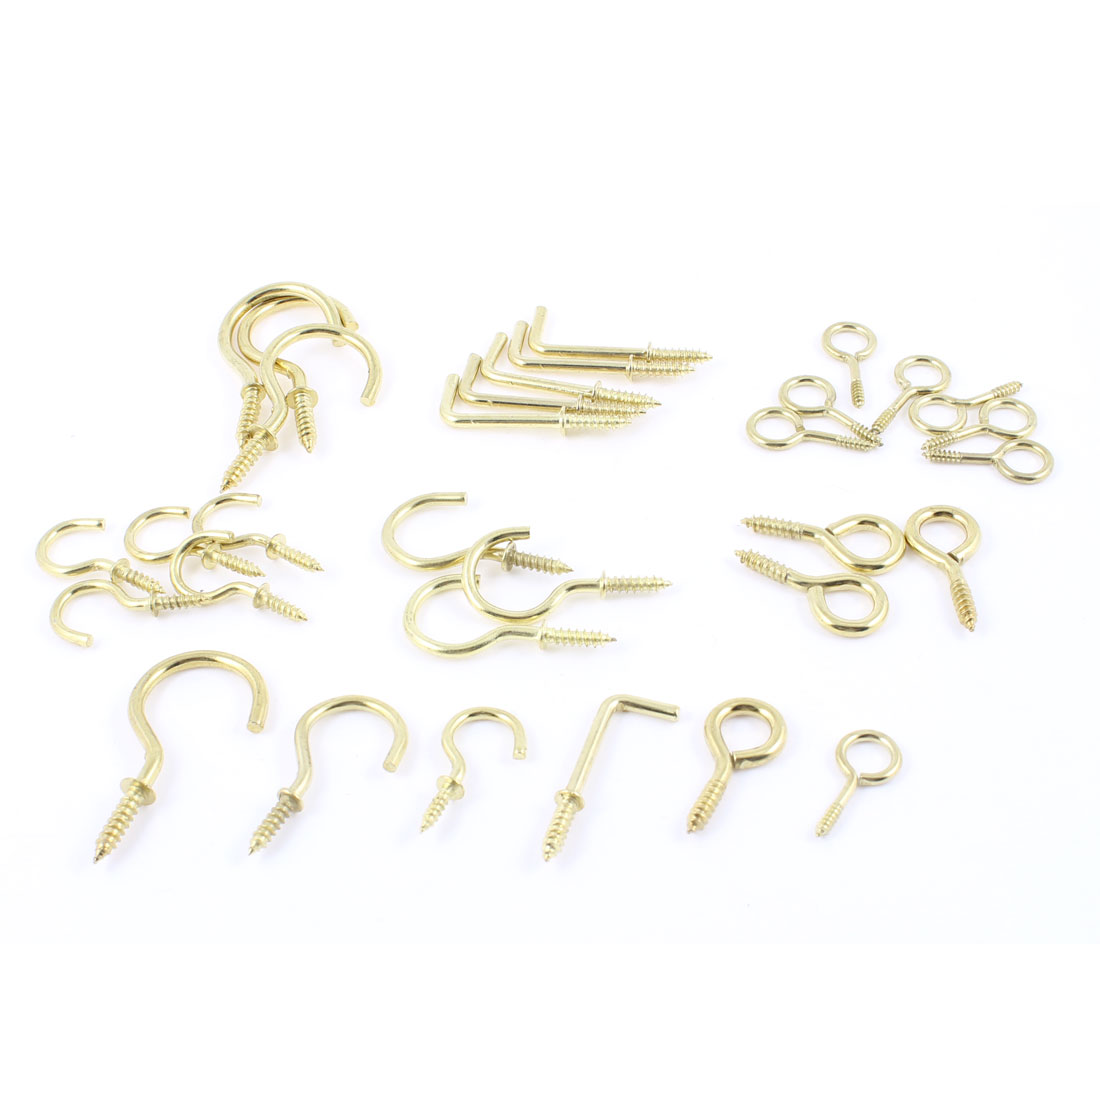 32 Pcs Ceiling Screw Hooks Plant Picture Hanger Lamp Wire Holder Gold Tone